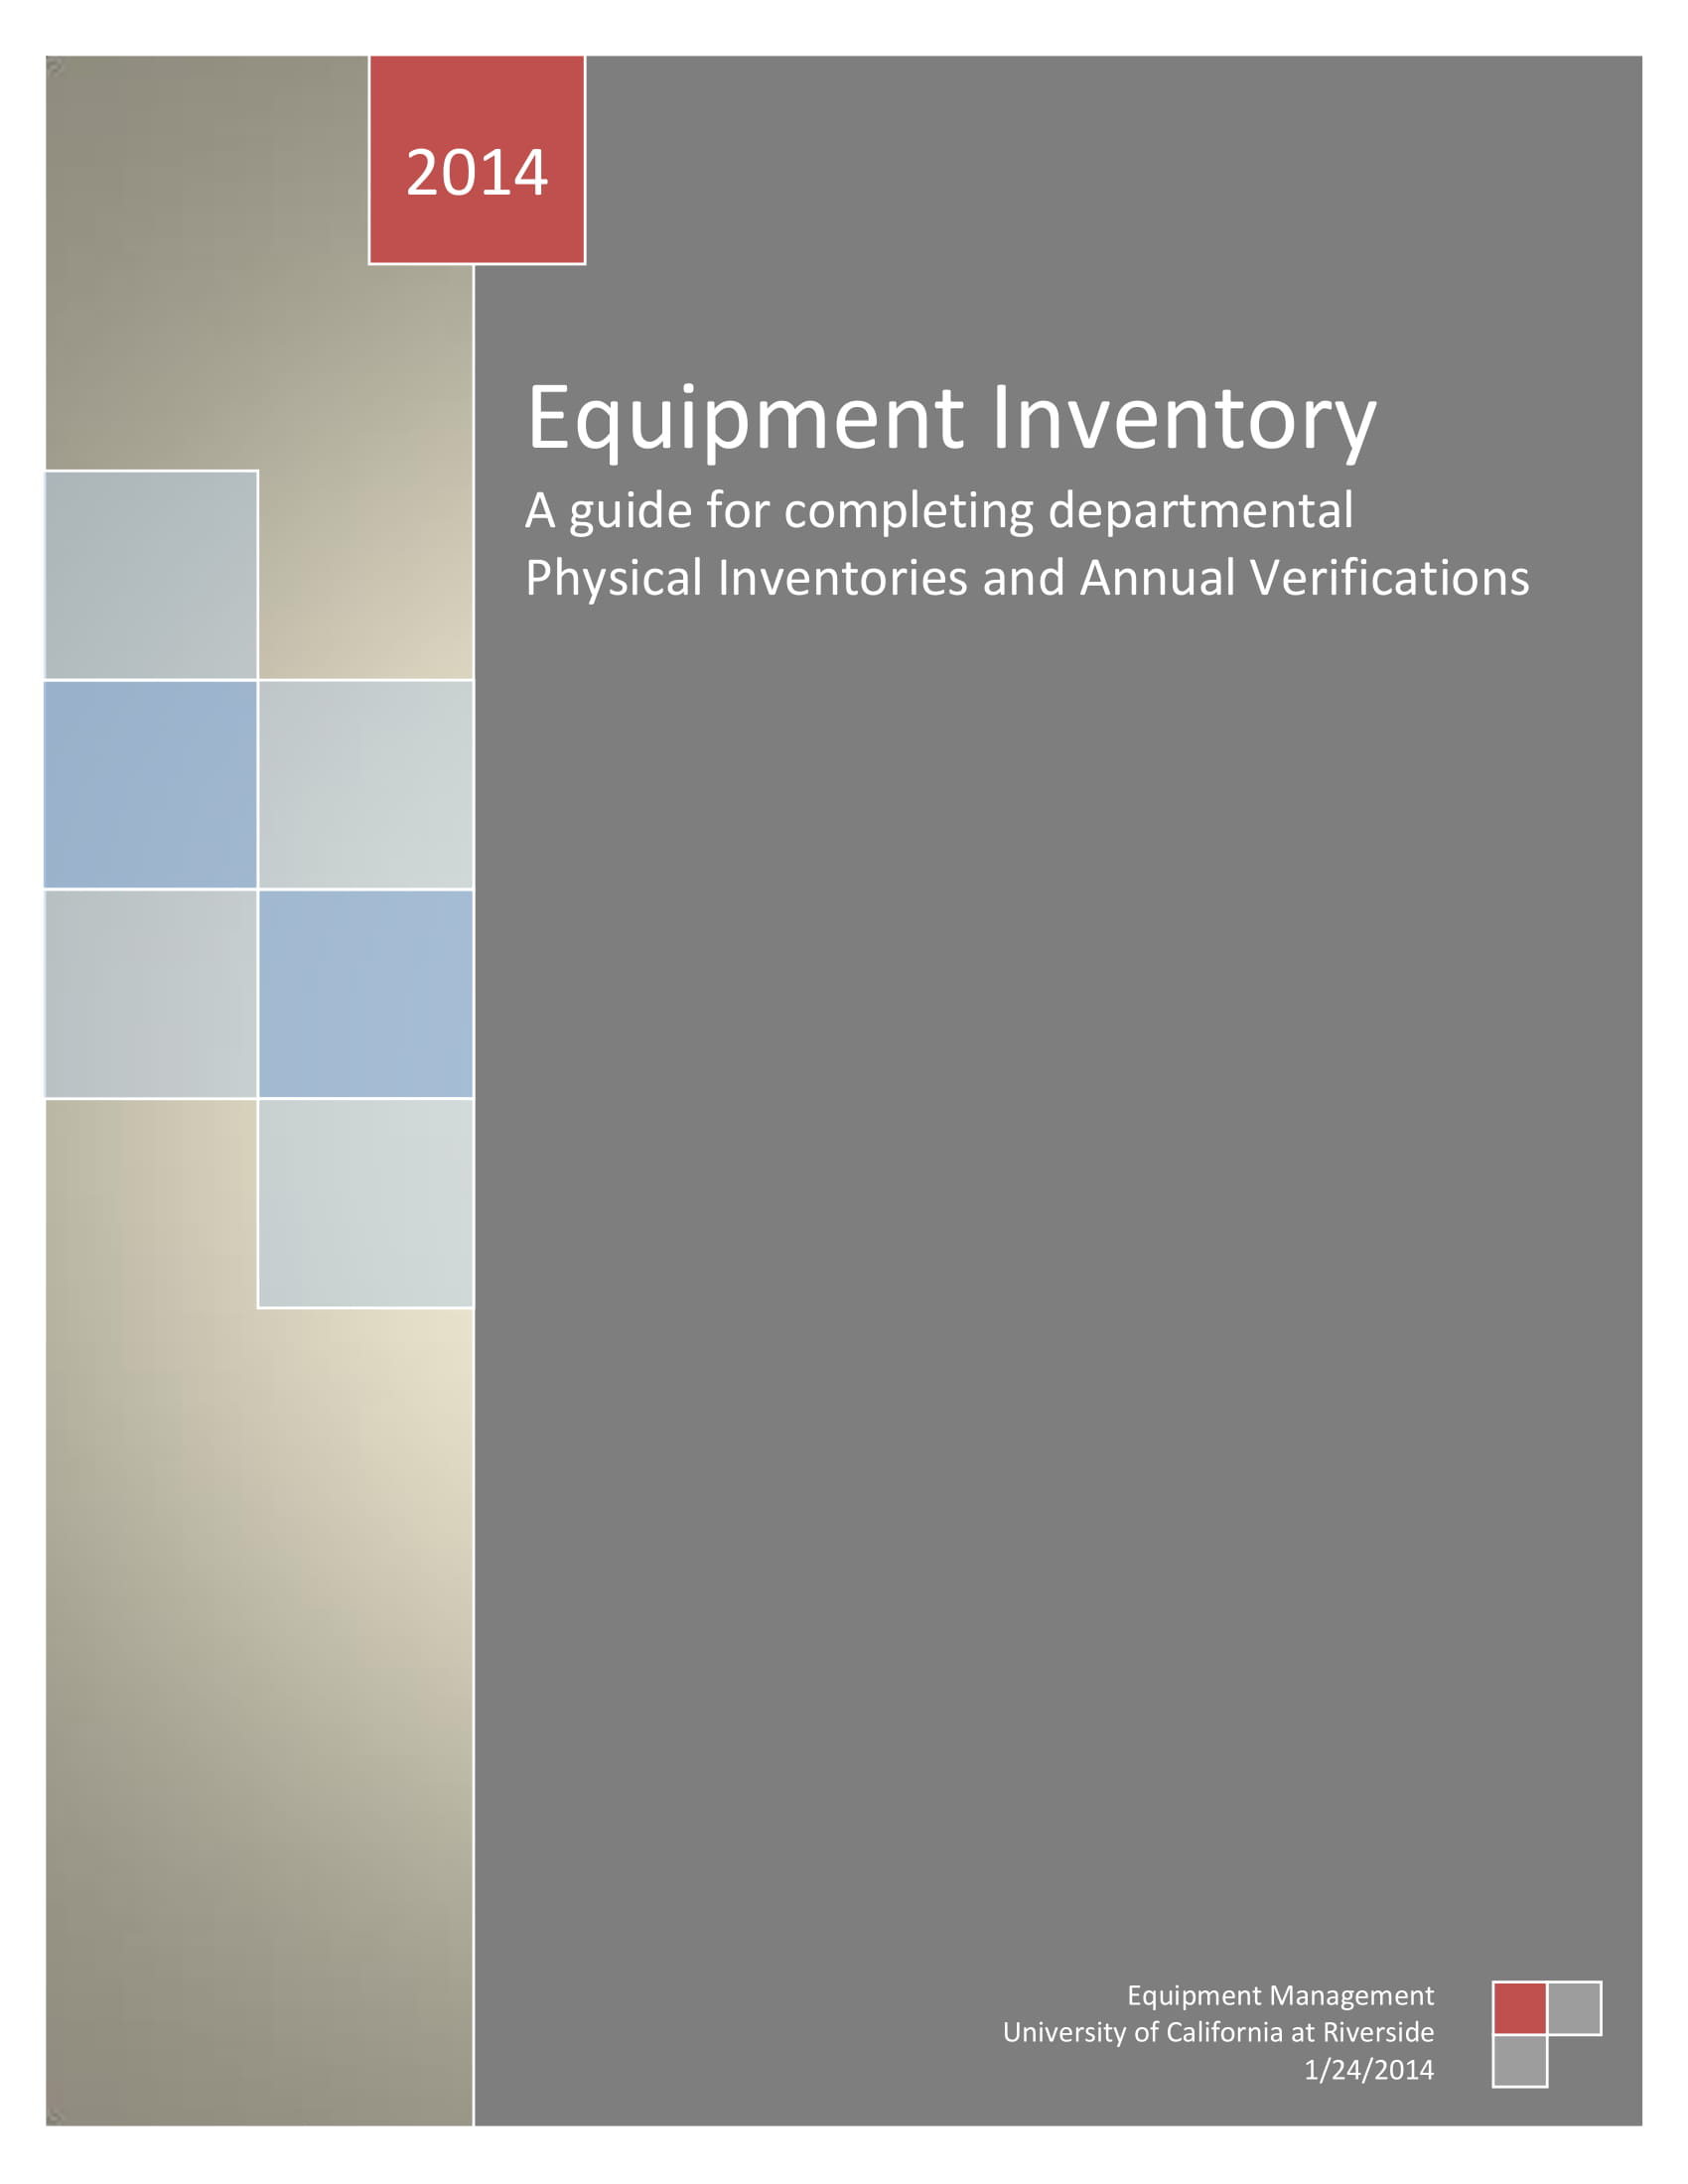 equipment inventory example 01